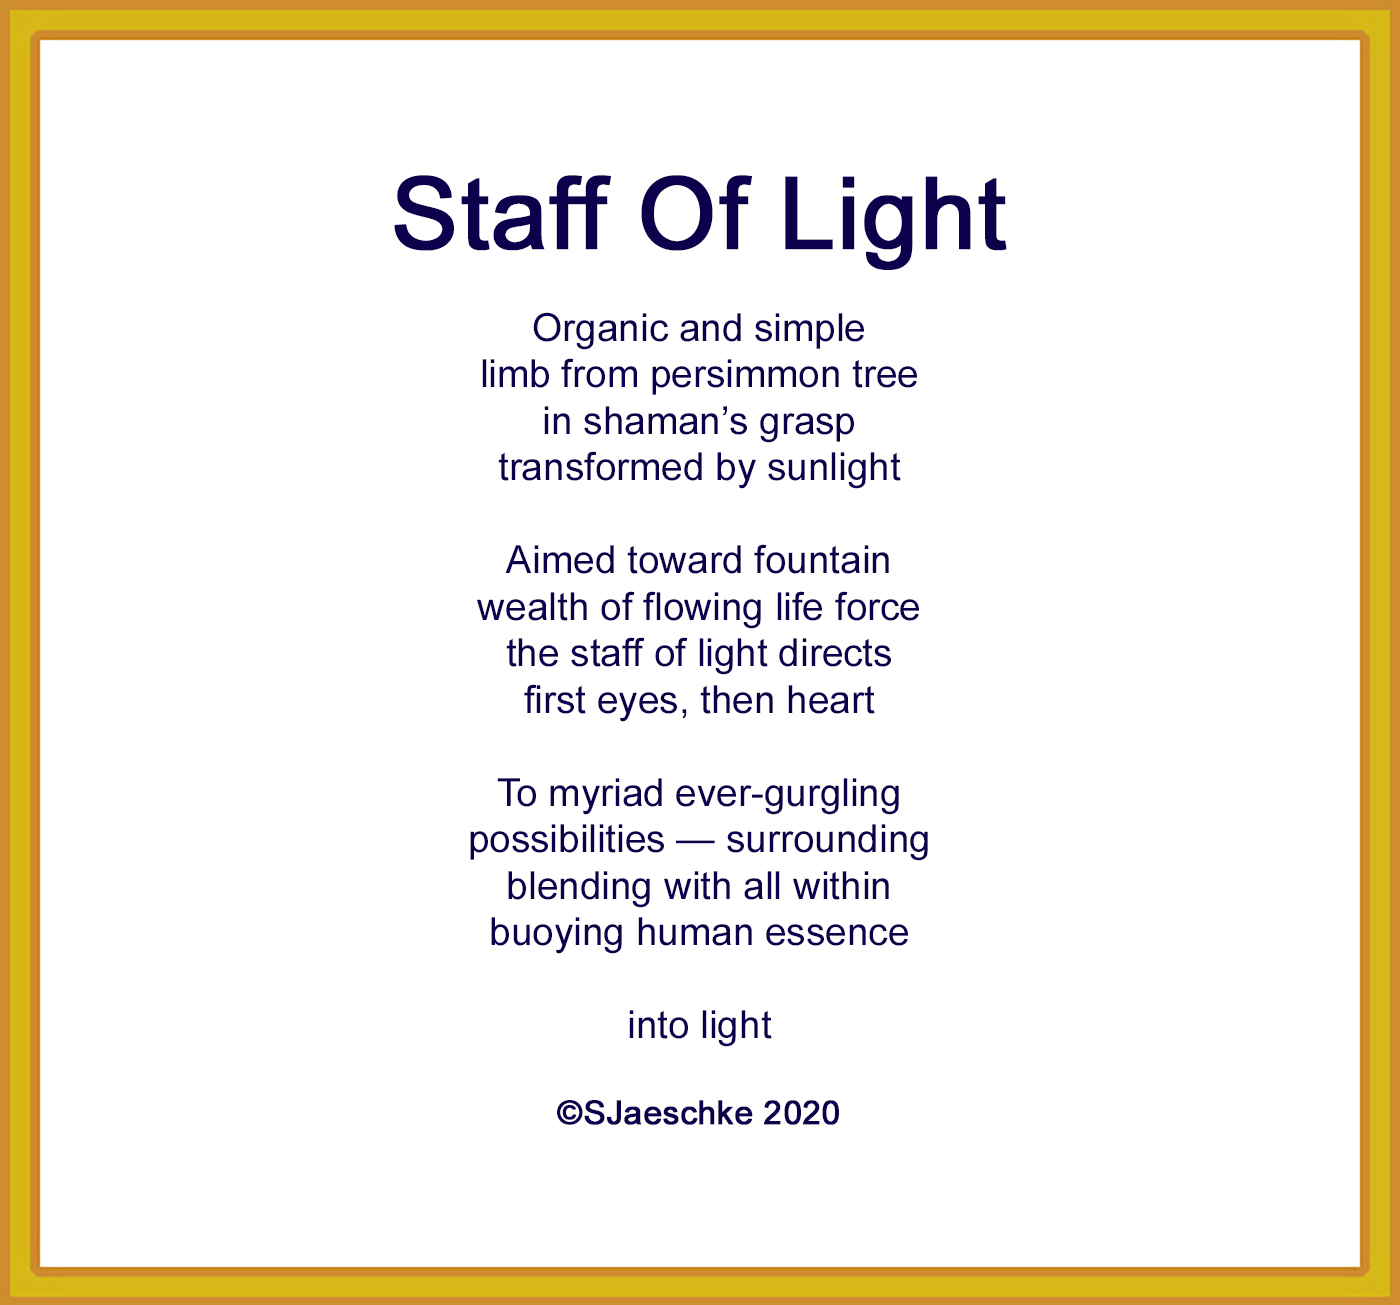 Post_2020-02-05_Poem_StaffOfLight